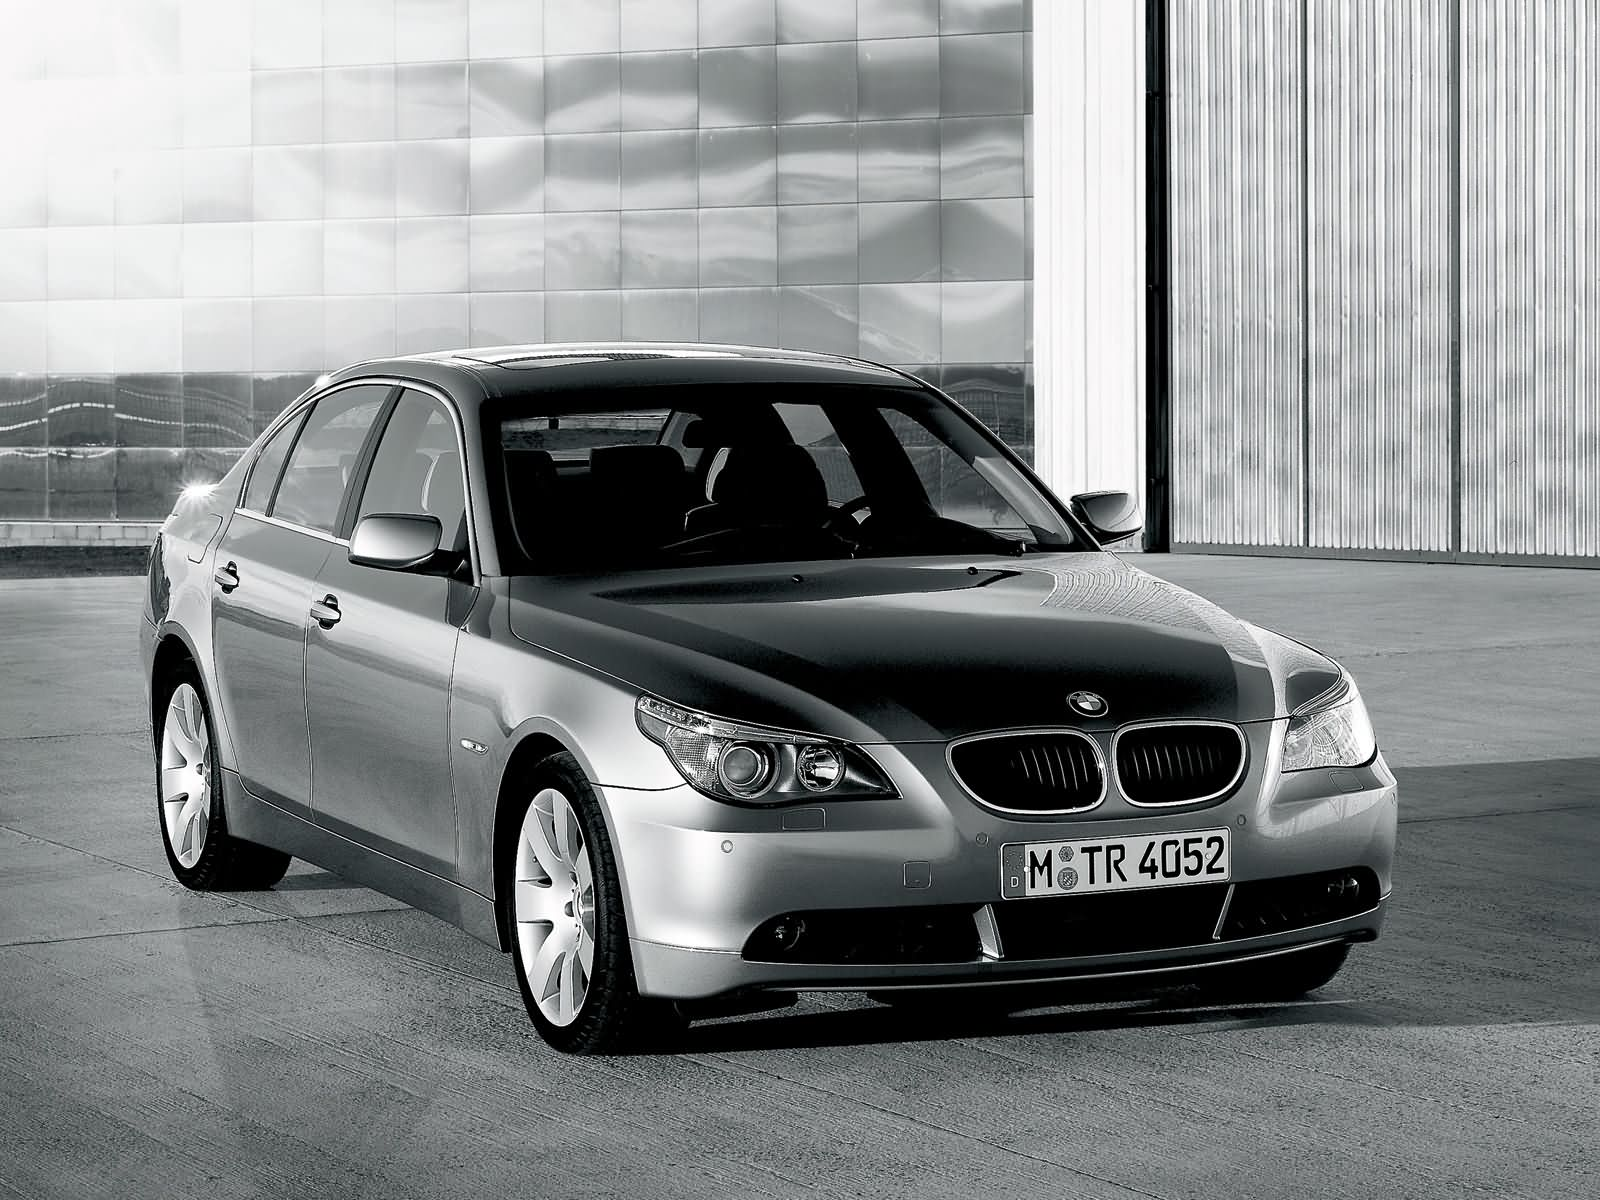 bmw 5 series e60 photos photogallery with 9 pics. Black Bedroom Furniture Sets. Home Design Ideas